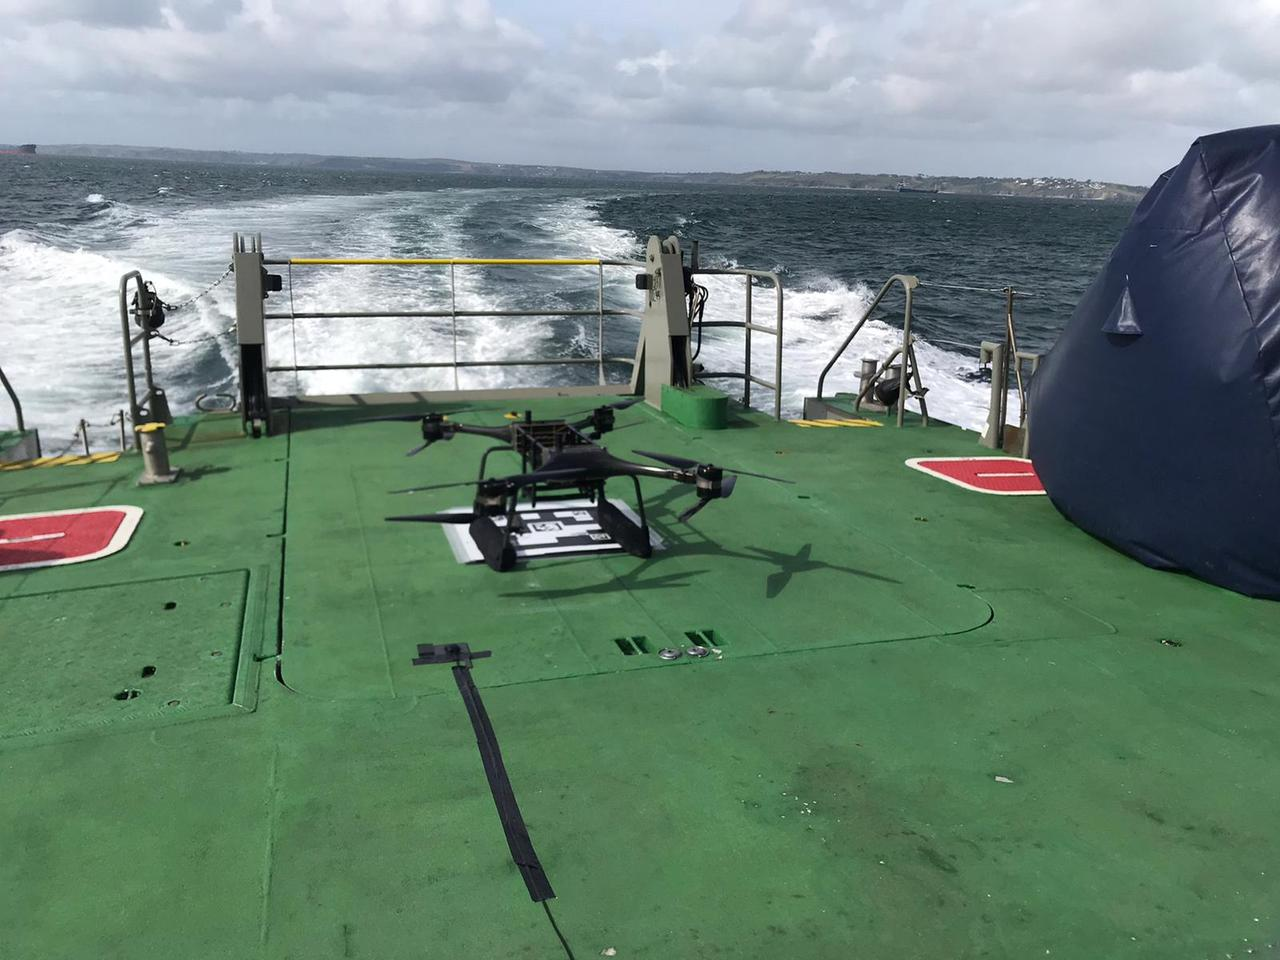 Minerva drones were used in the person overboard tests